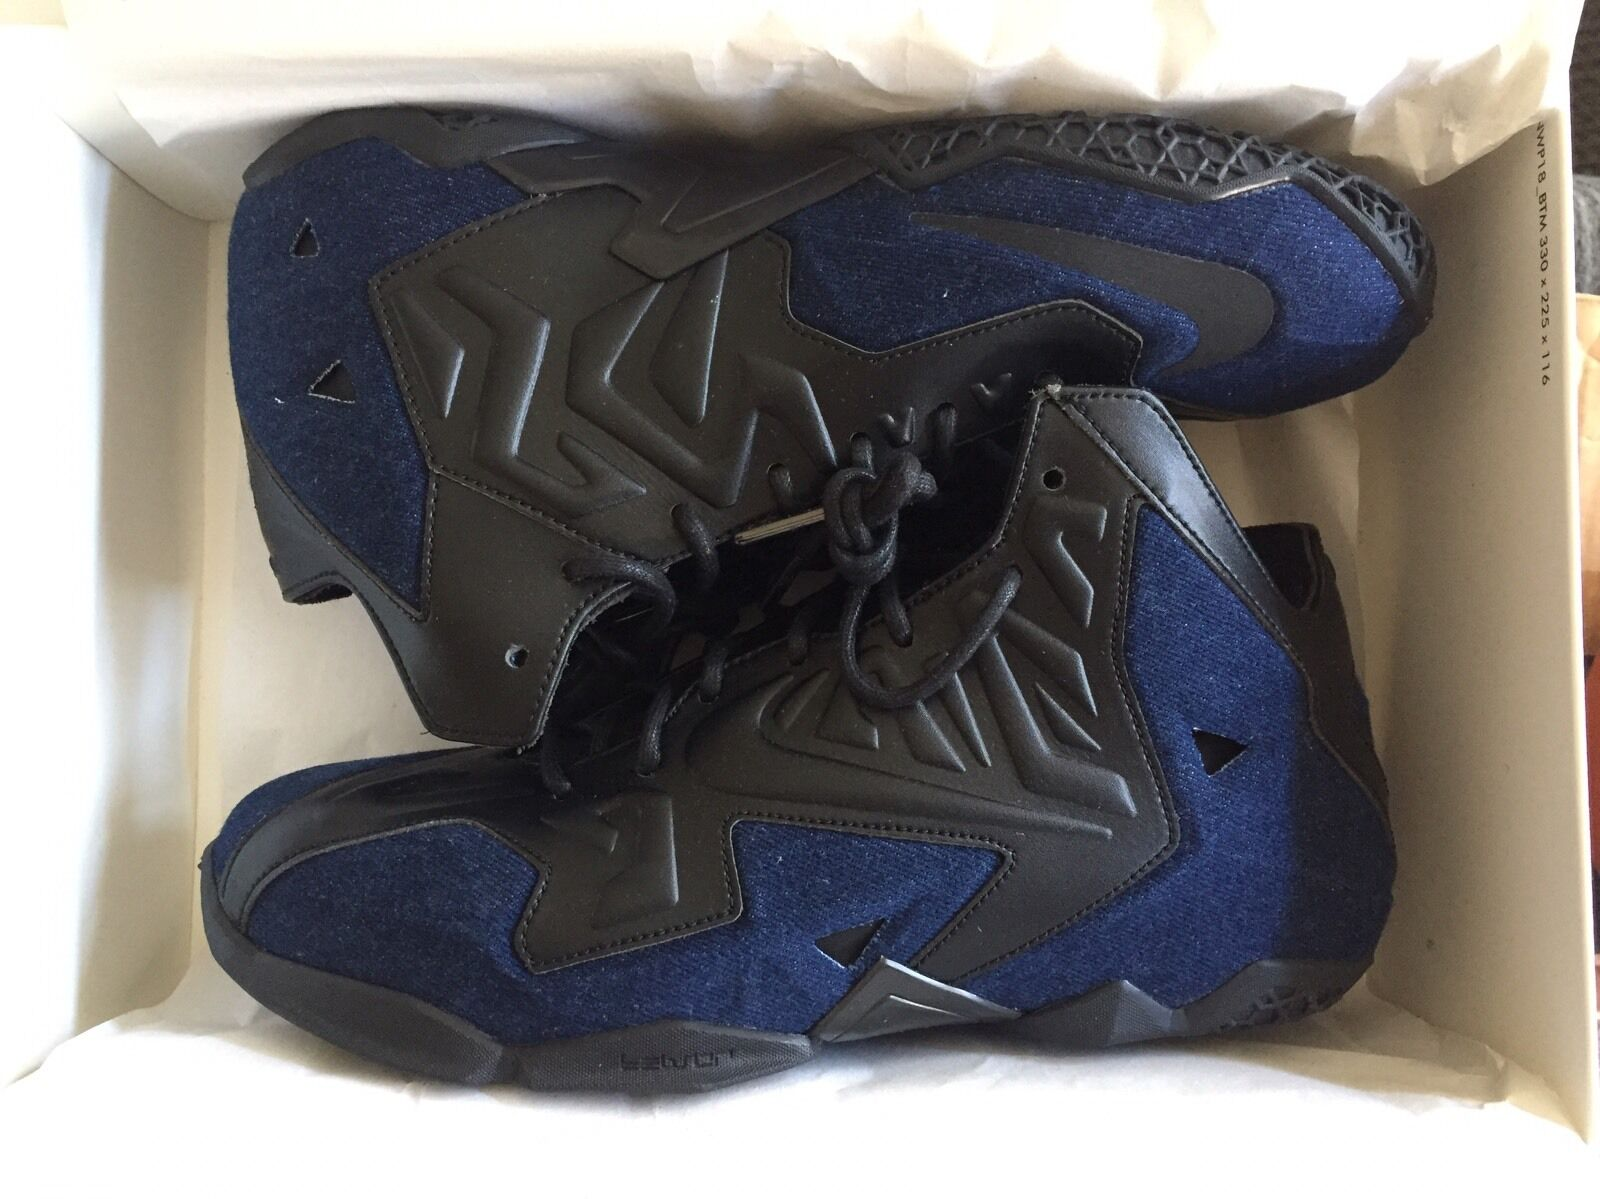 Nike Lebron 11 EXT Denim QS US9.5 Brand New DS On Sale 100% AUTHENTIC UPS Ground